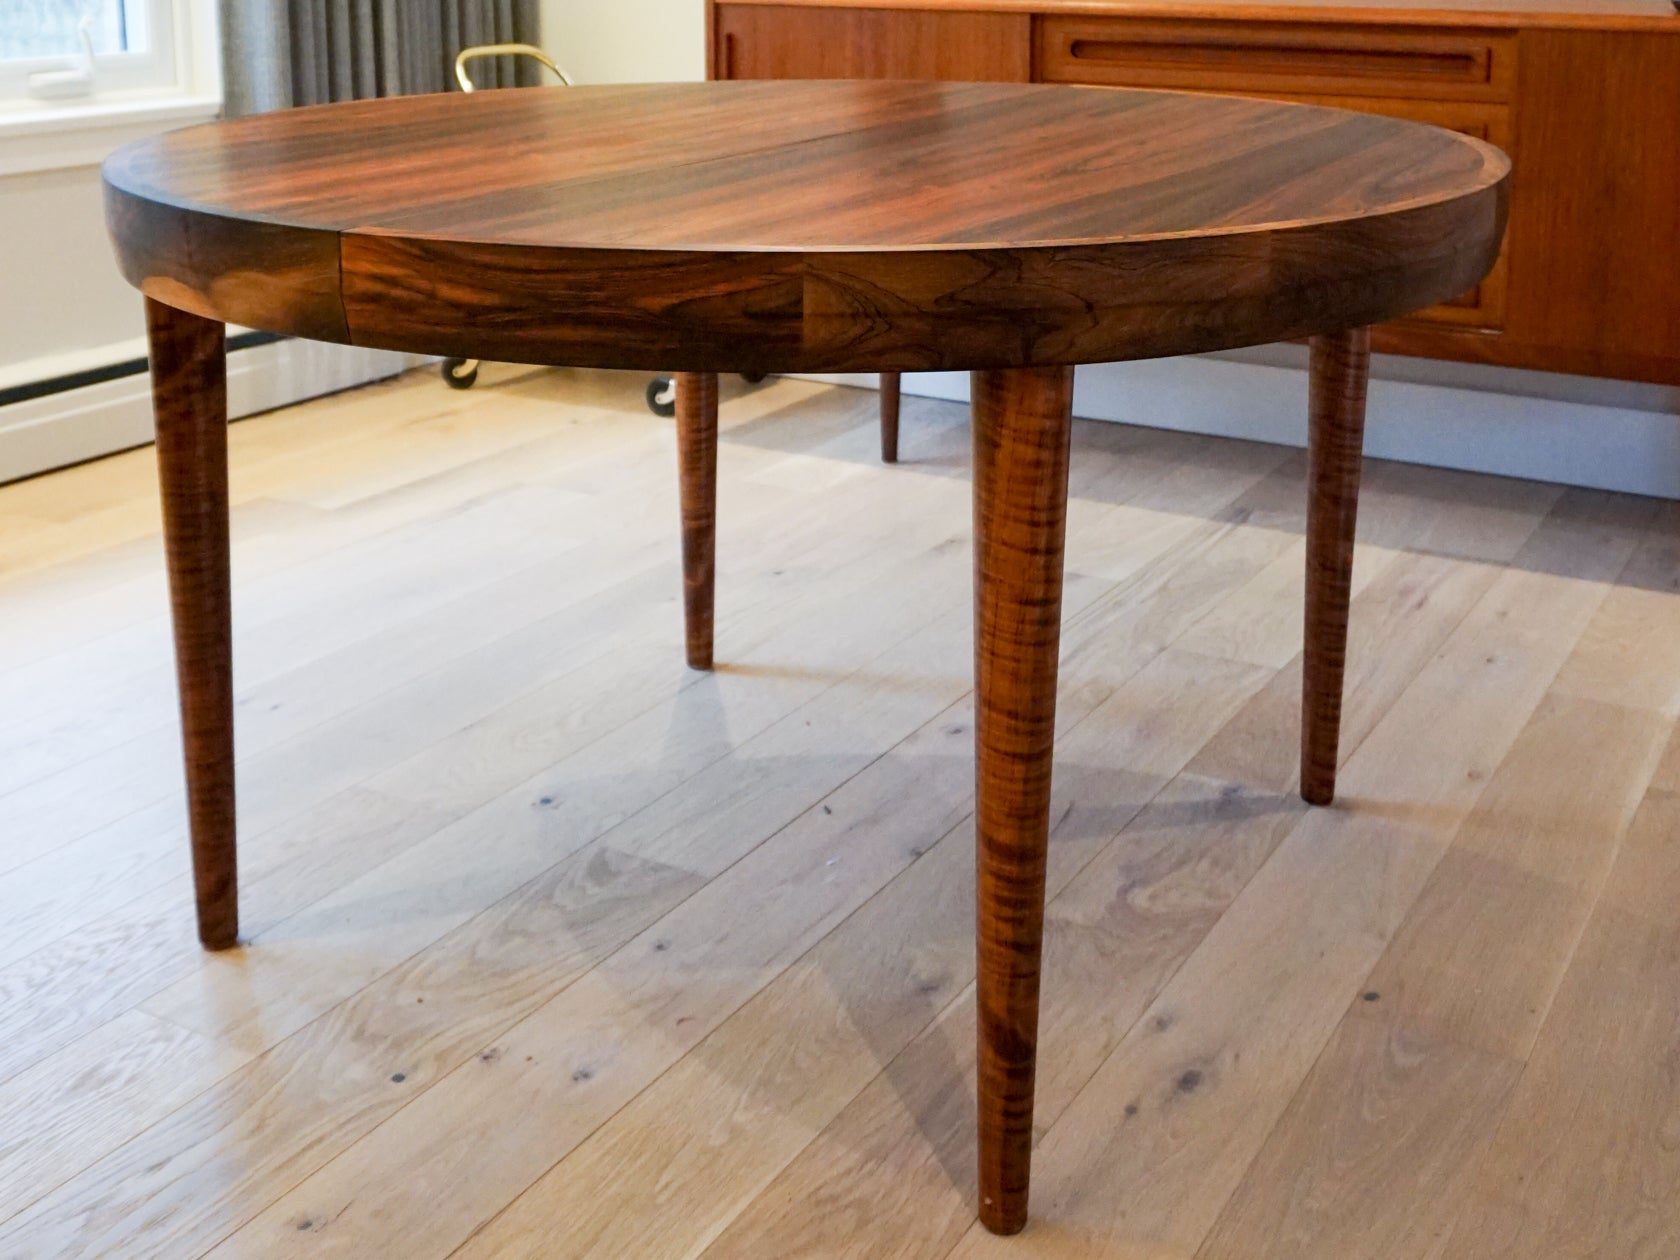 Merveilleux Rosewood Round Dining Table Images Round Dining Room Tables